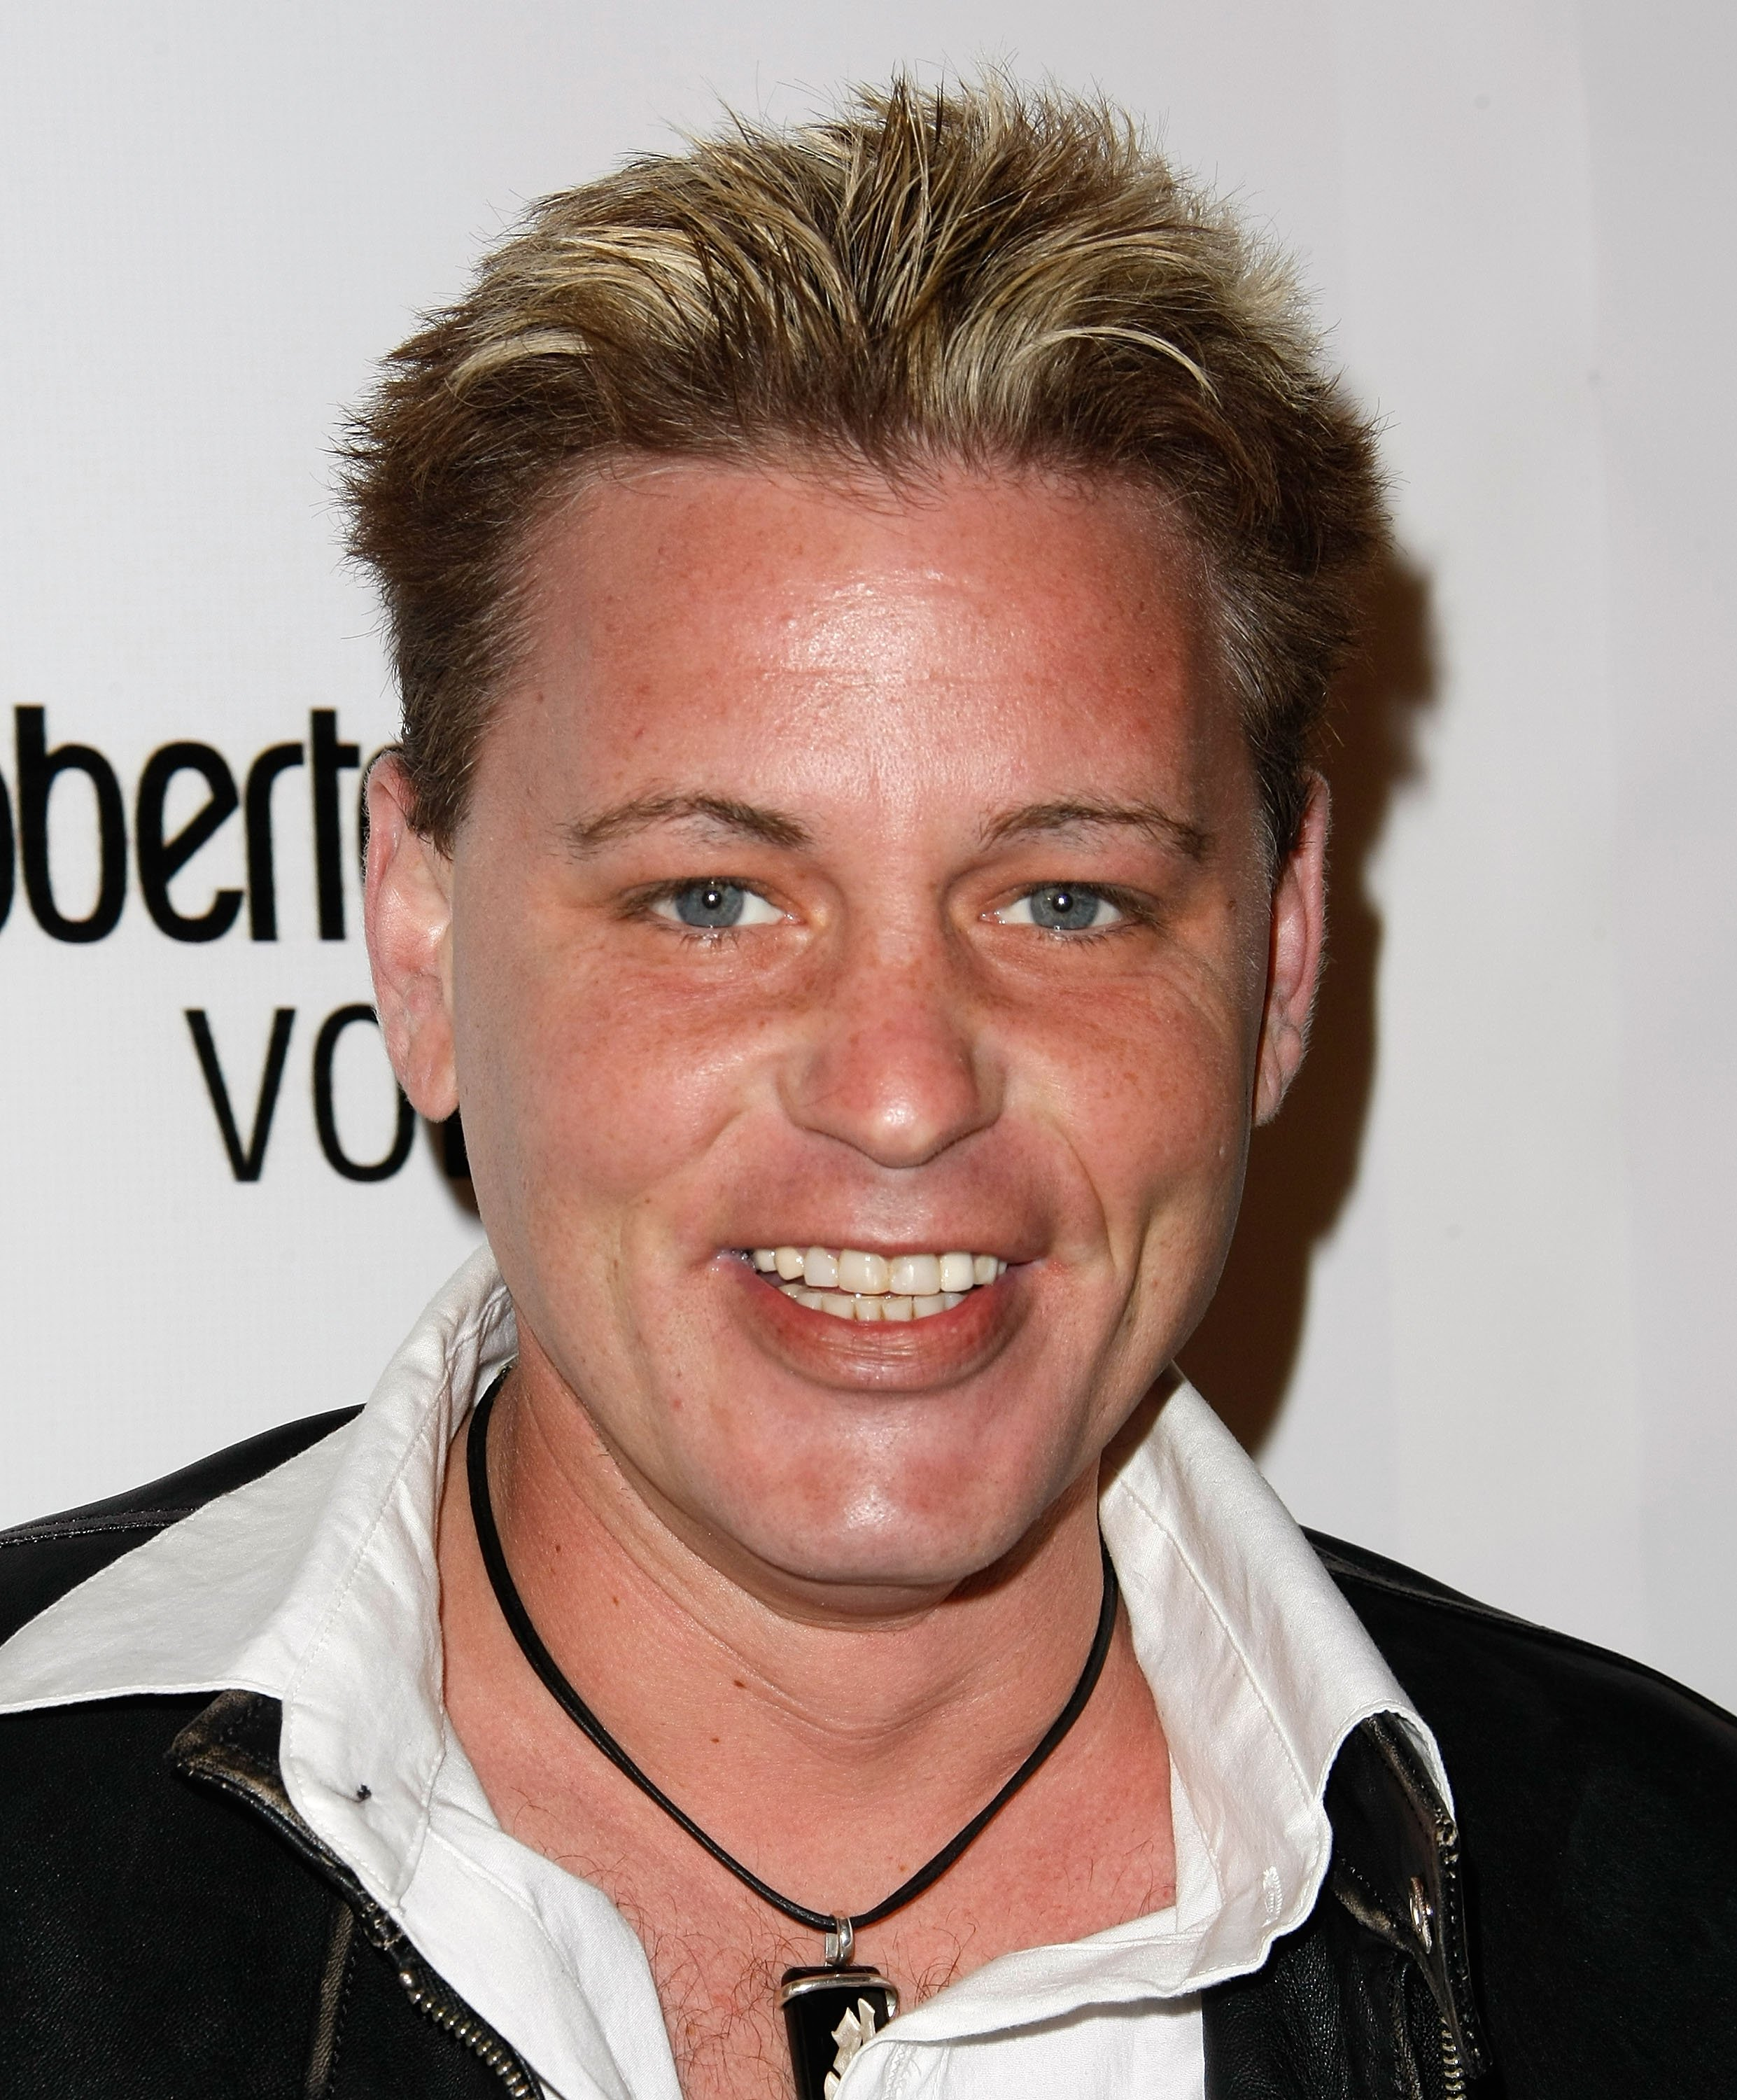 Corey Haim arrives at a Fashion Show on March 19, 2009, in Hollywood, California. | Source: Getty Images.